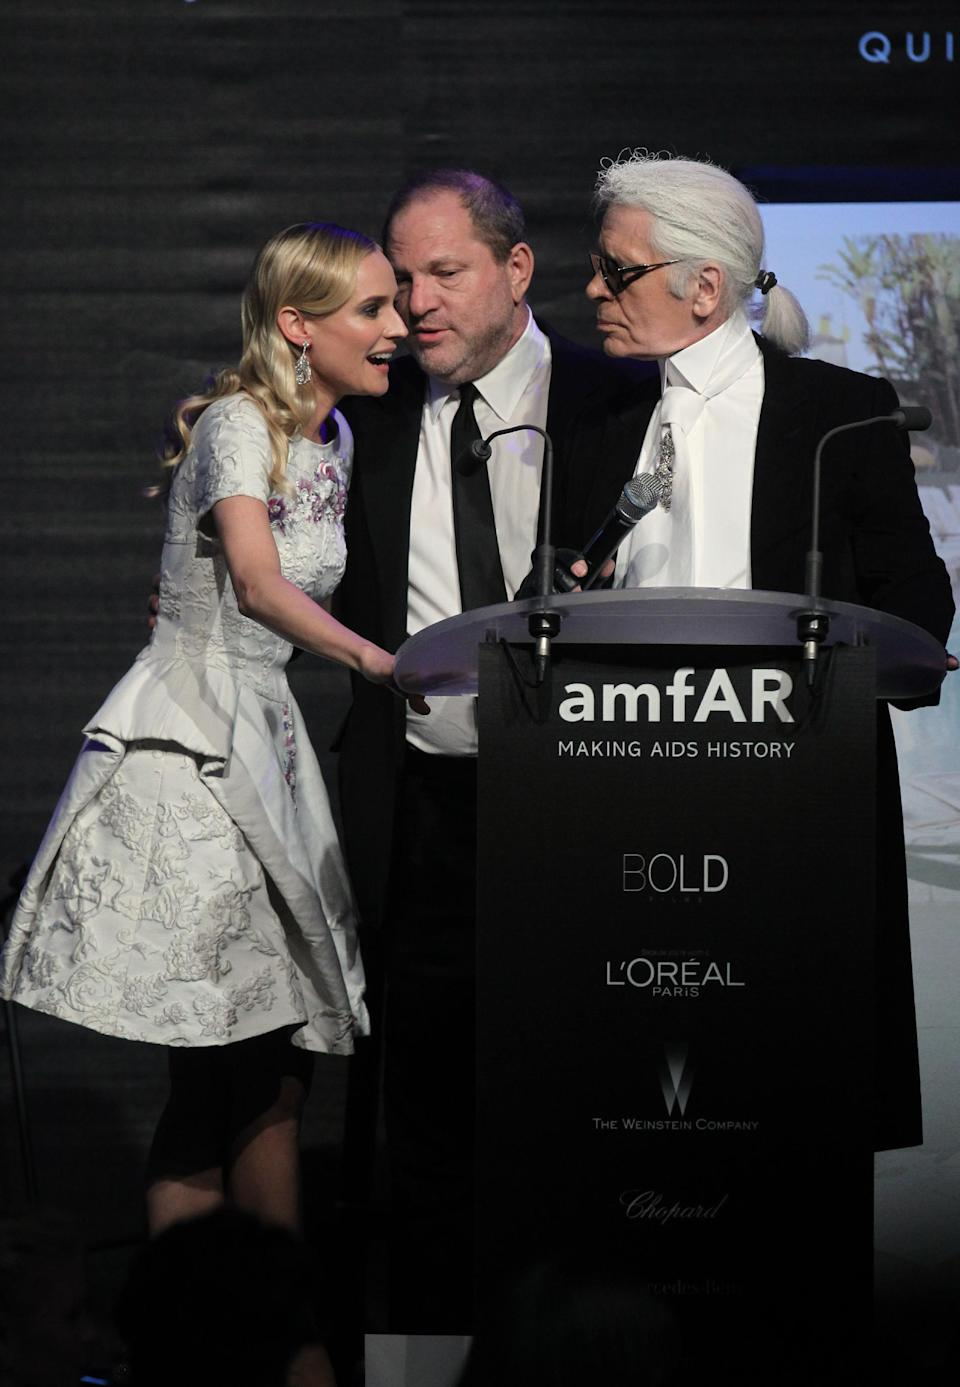 Diane Kruger, Harvey Weinstein and Karl Lagerfeld during the auction for the amfAR Cinema Against AIDS benefit during the 65th Cannes film festival, in Cap d'Antibes, southern France, Thursday, May 24, 2012. (AP Photo/Joel Ryan)